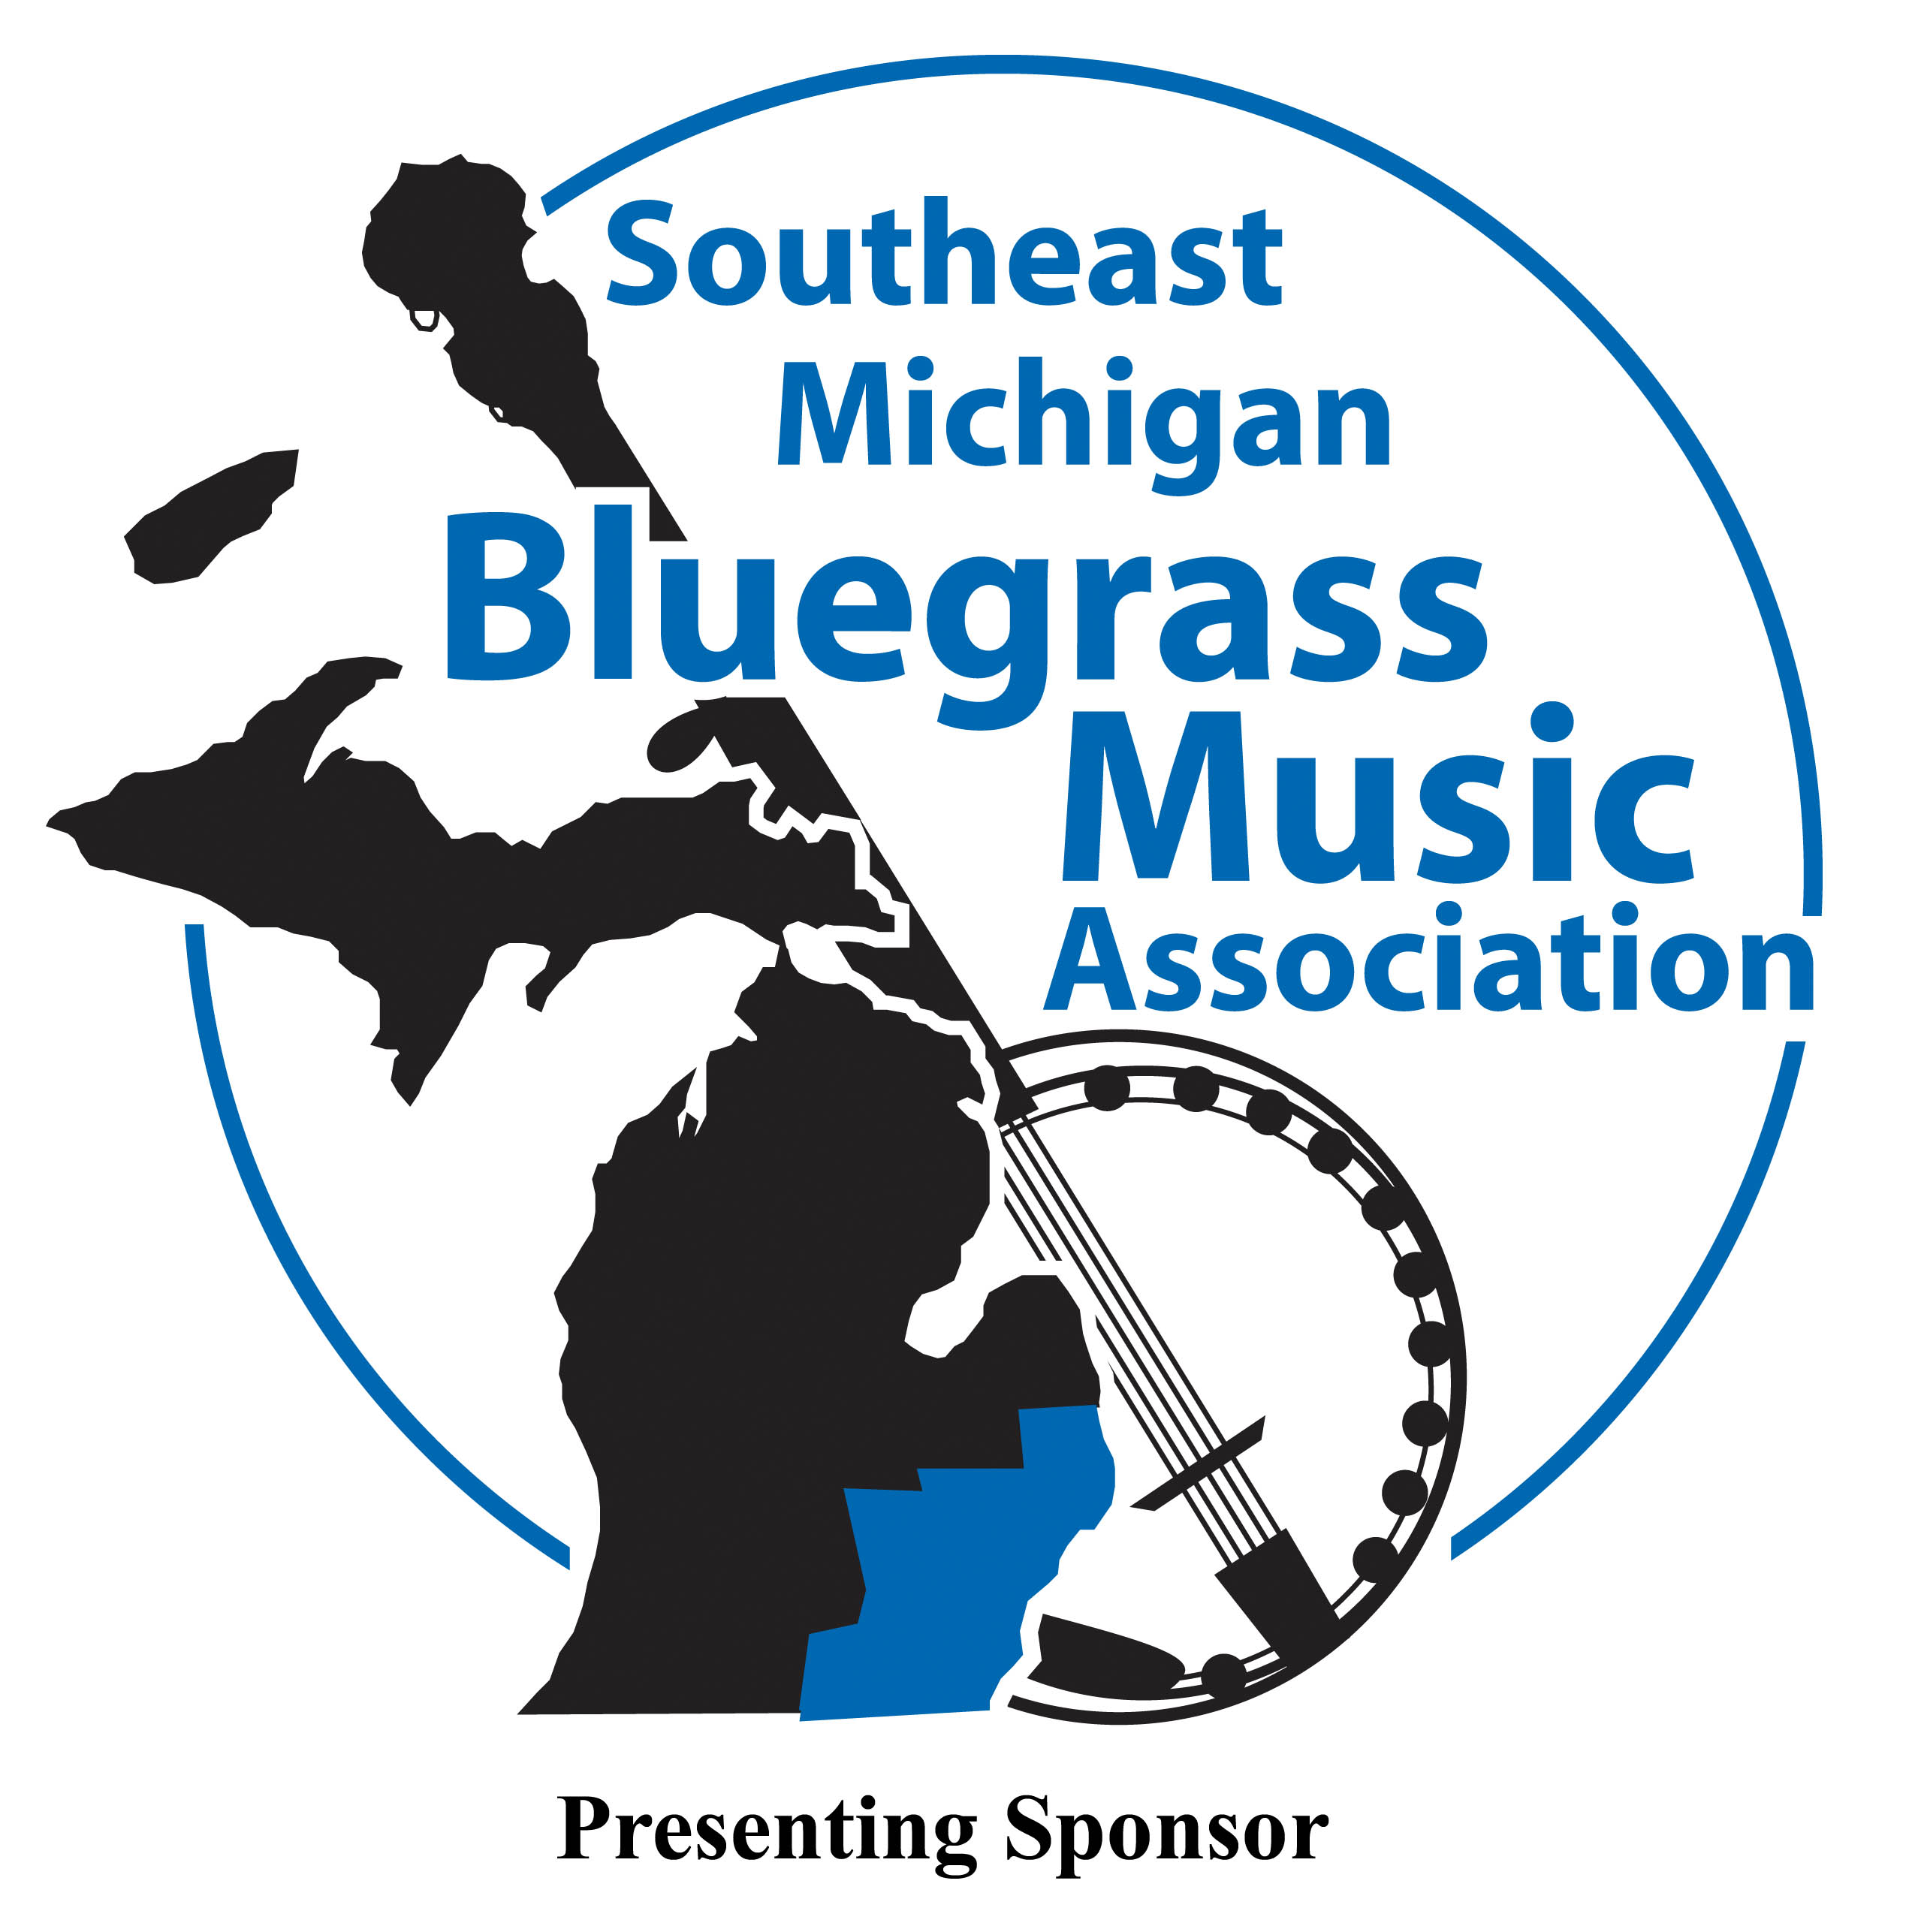 Southeast Michigan Bluegrass Music Association